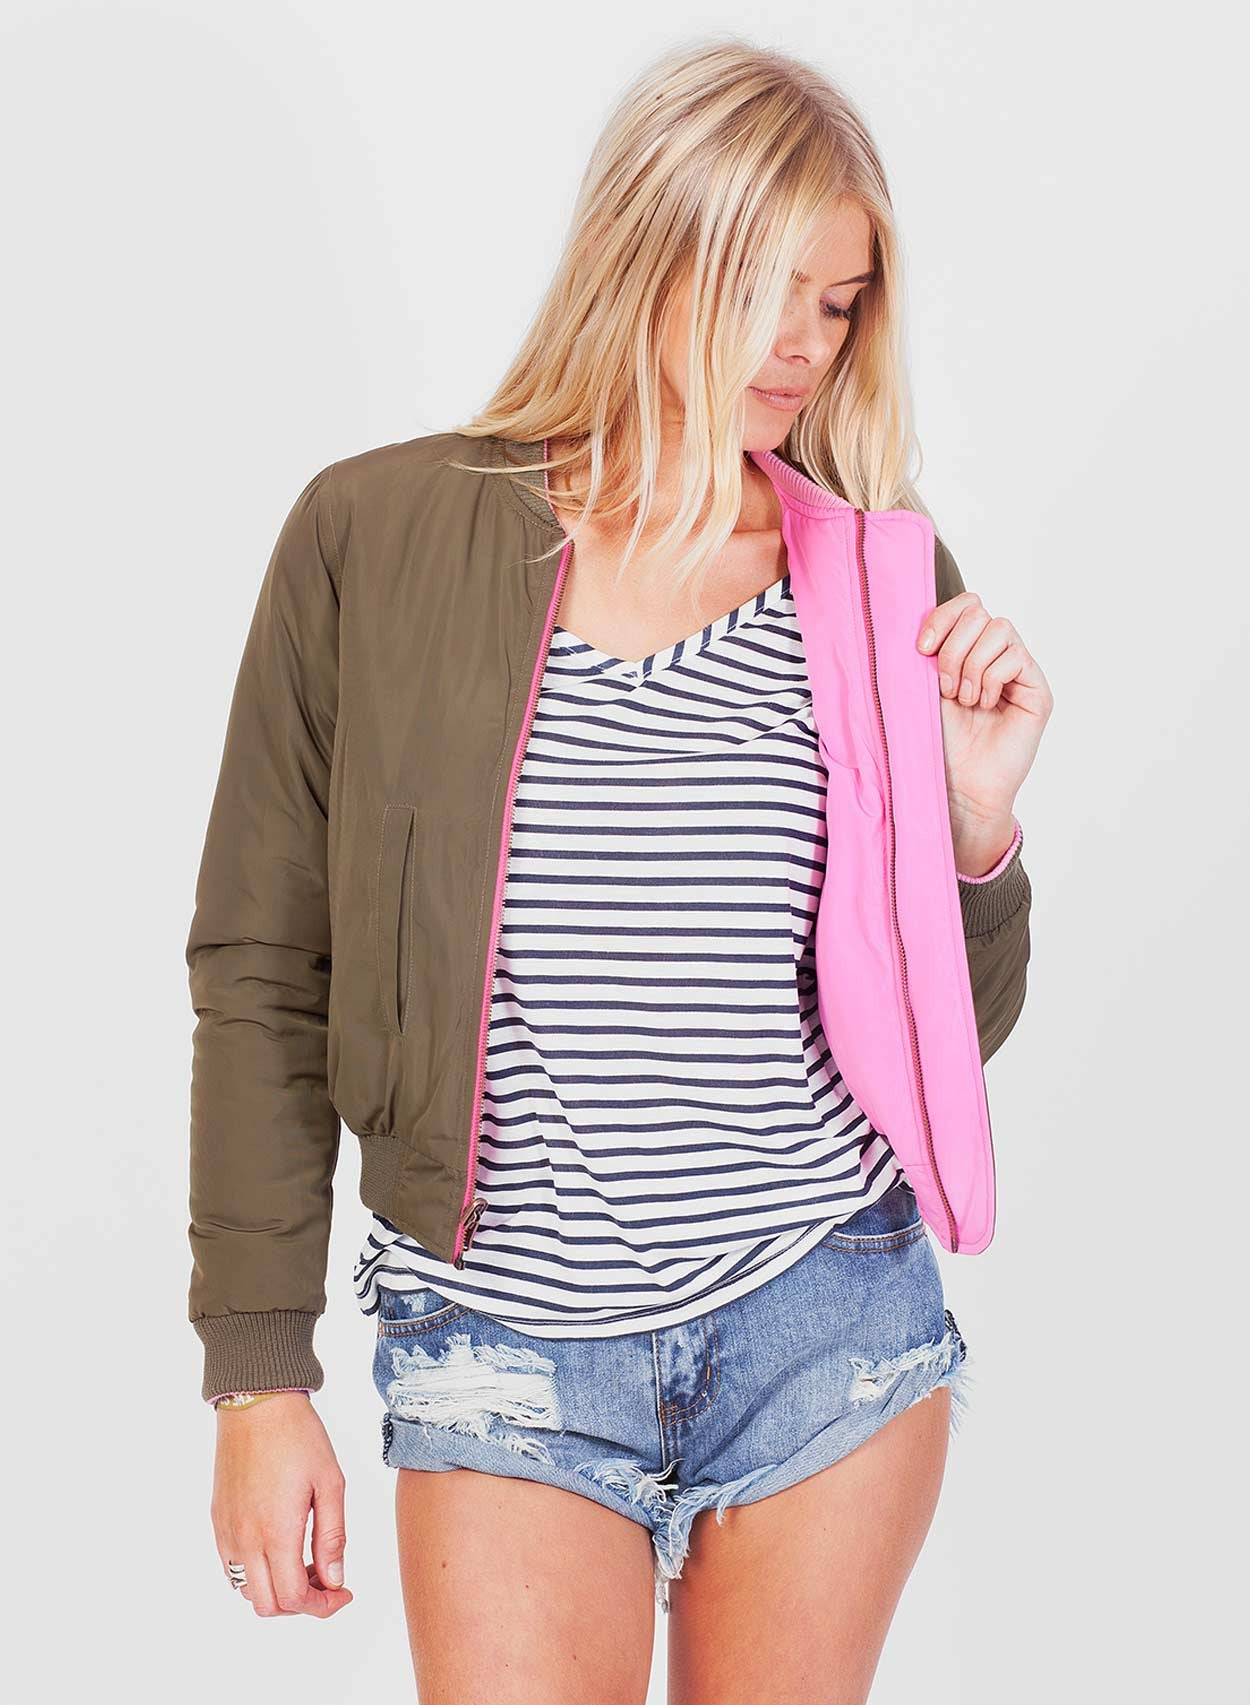 Love Reversible Bomber - LoveClothing.com - 6